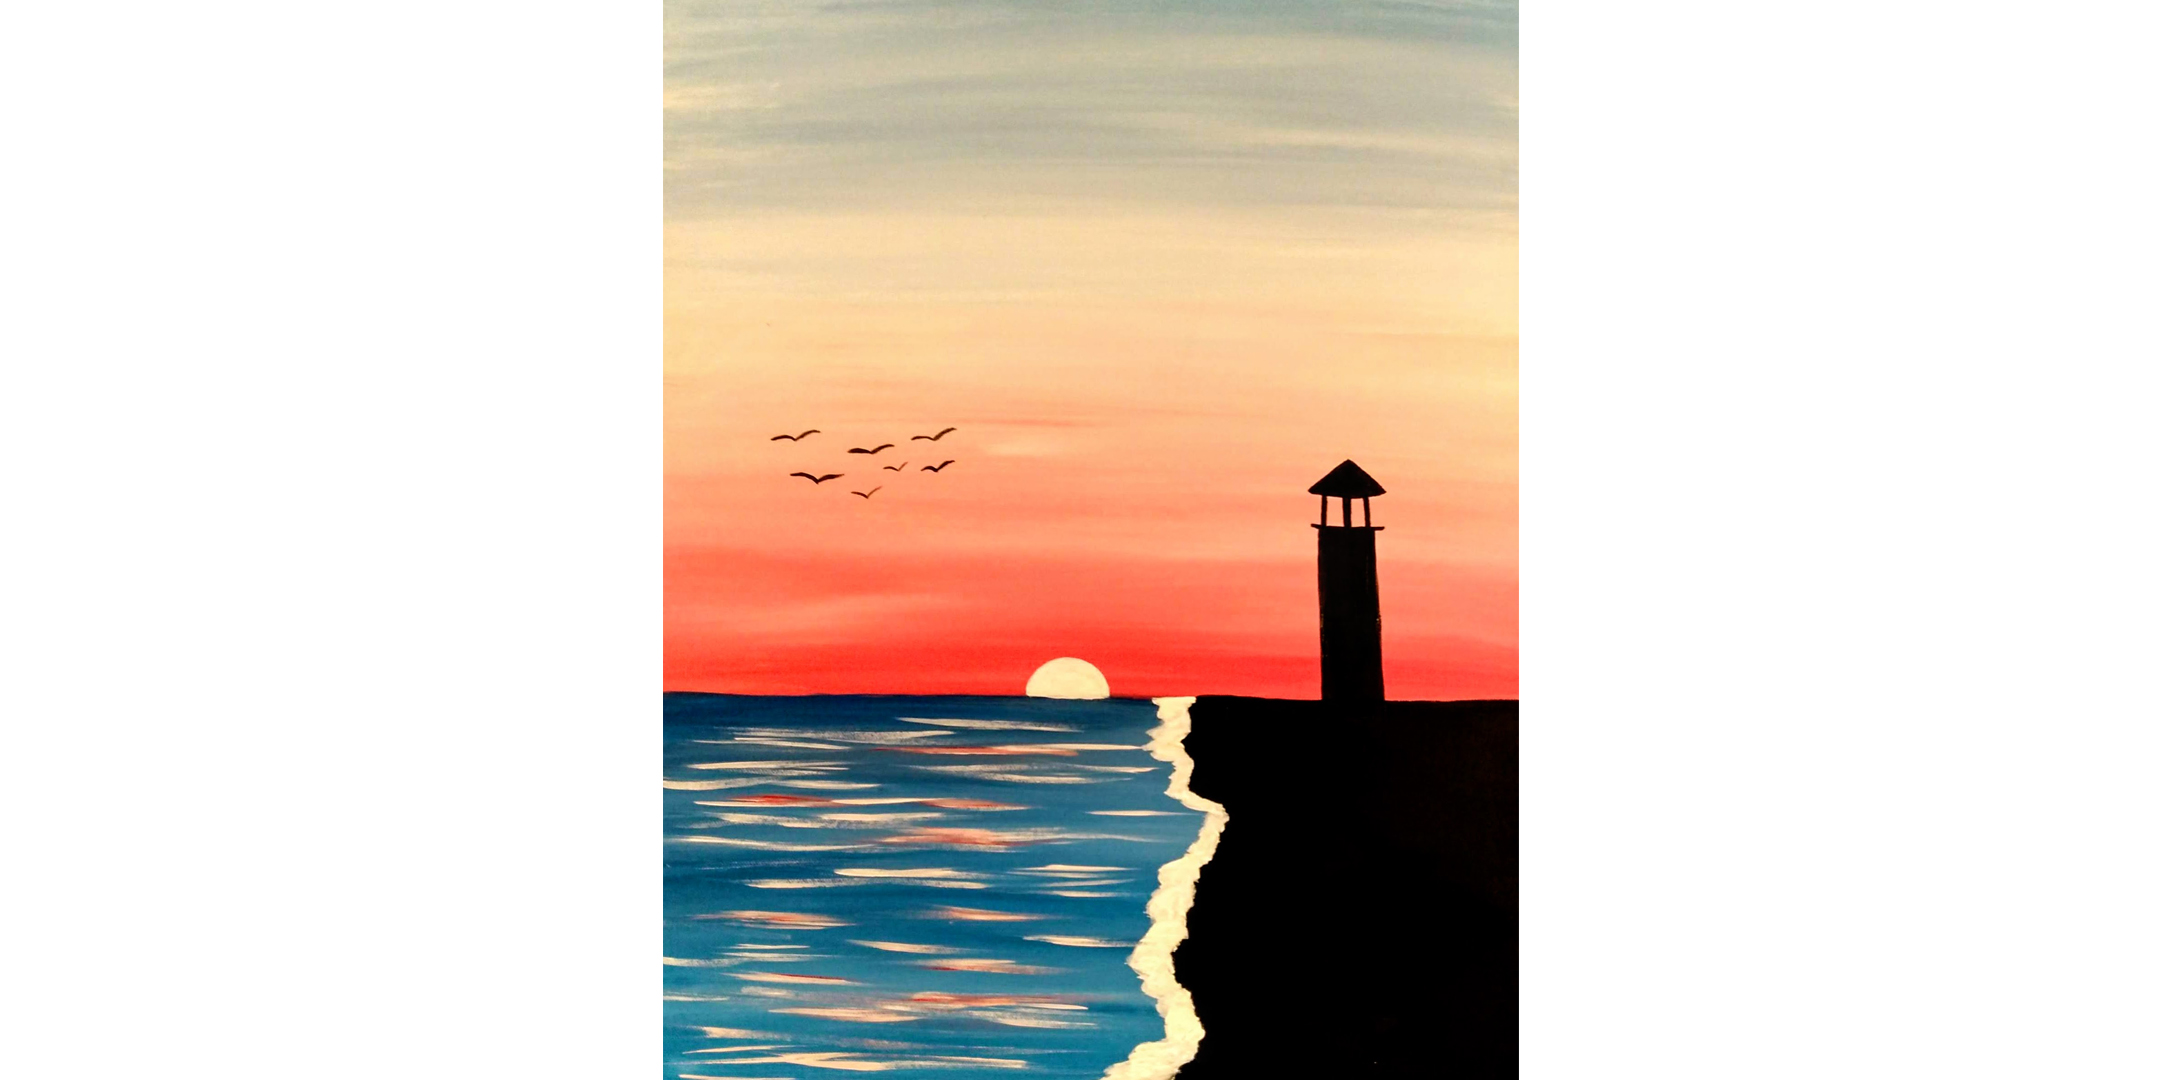 June 27th 1pm Sip and Paint